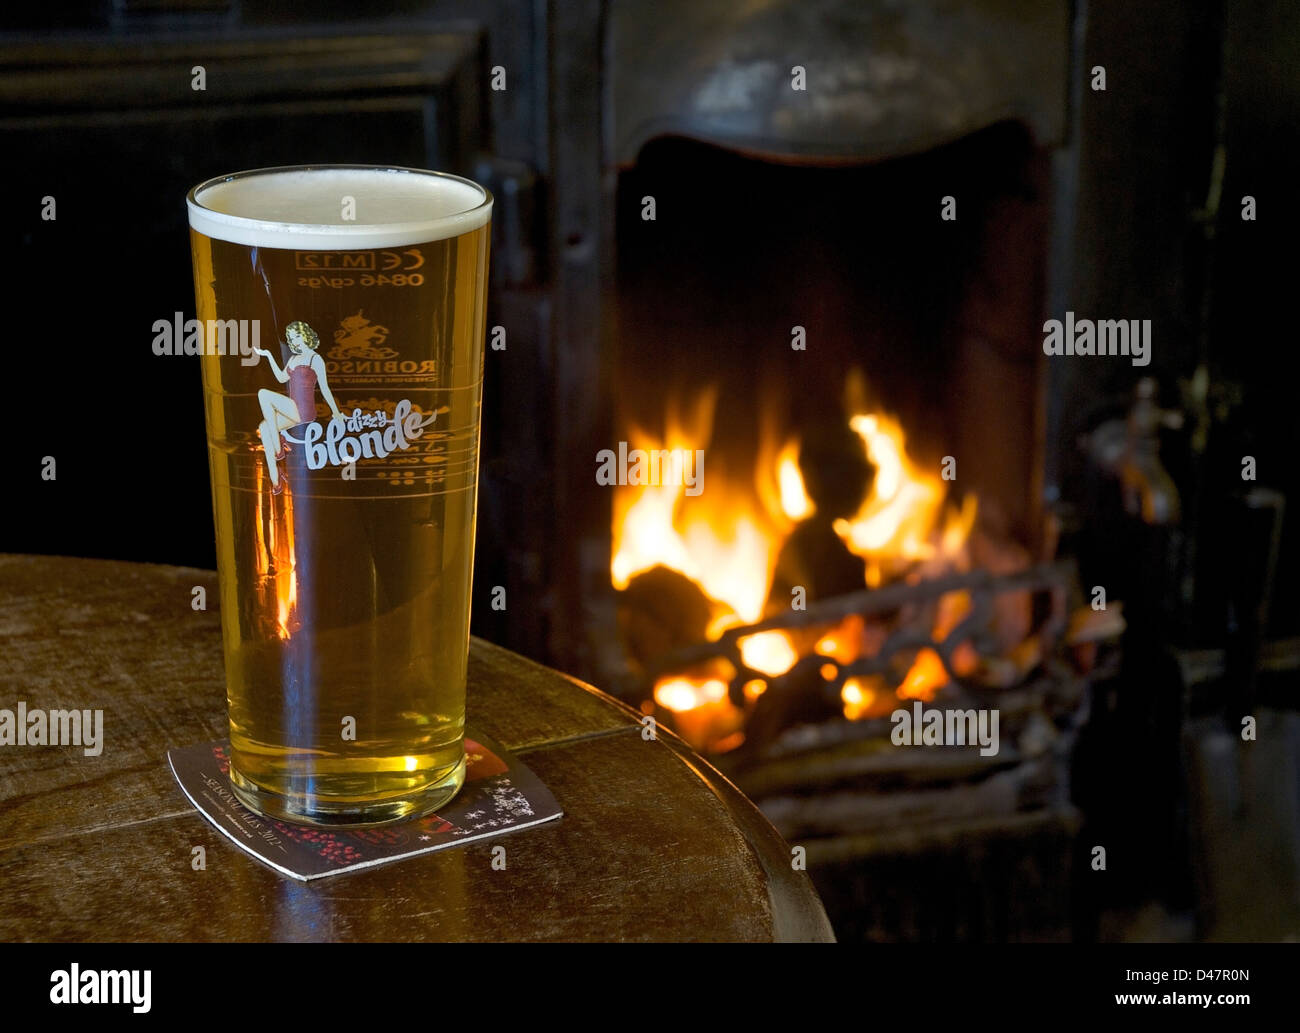 A pint of Dizzy Blonde beer on a pub table, with open fire in the background Stock Photo